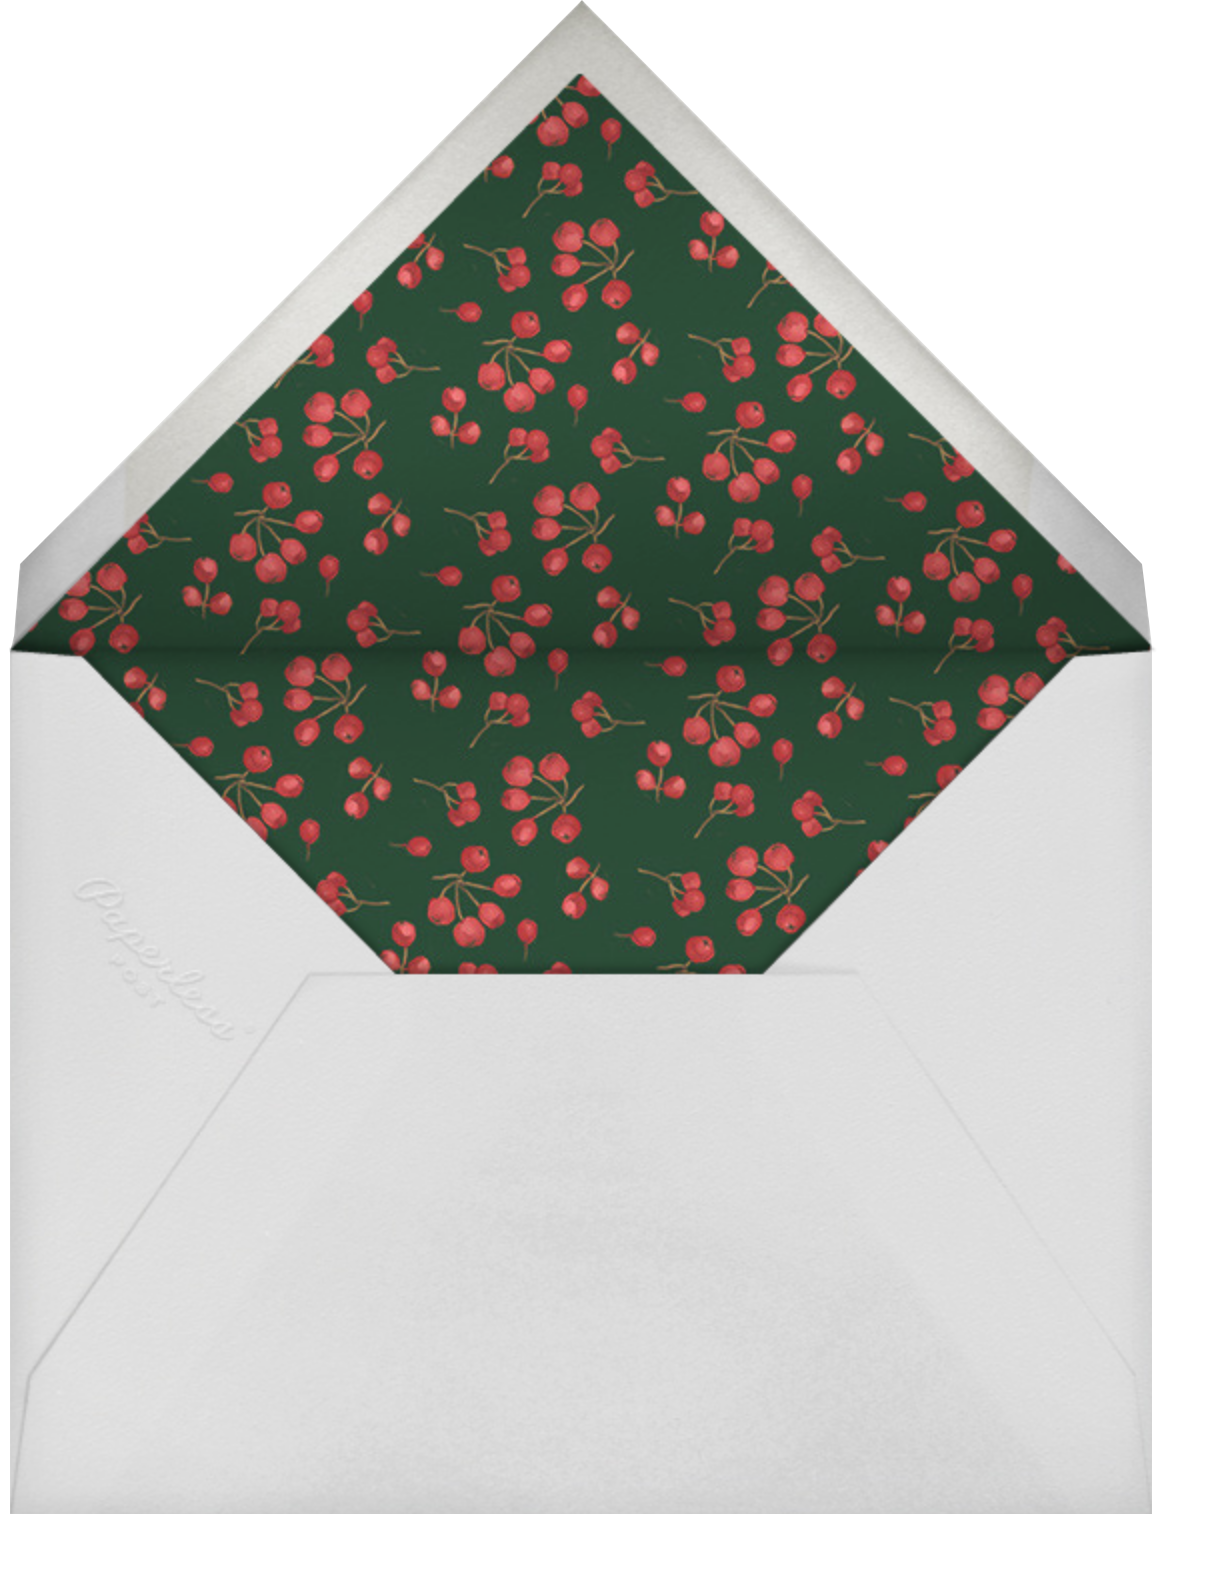 Holly Branch Holiday - Paperless Post - Company holiday cards - envelope back